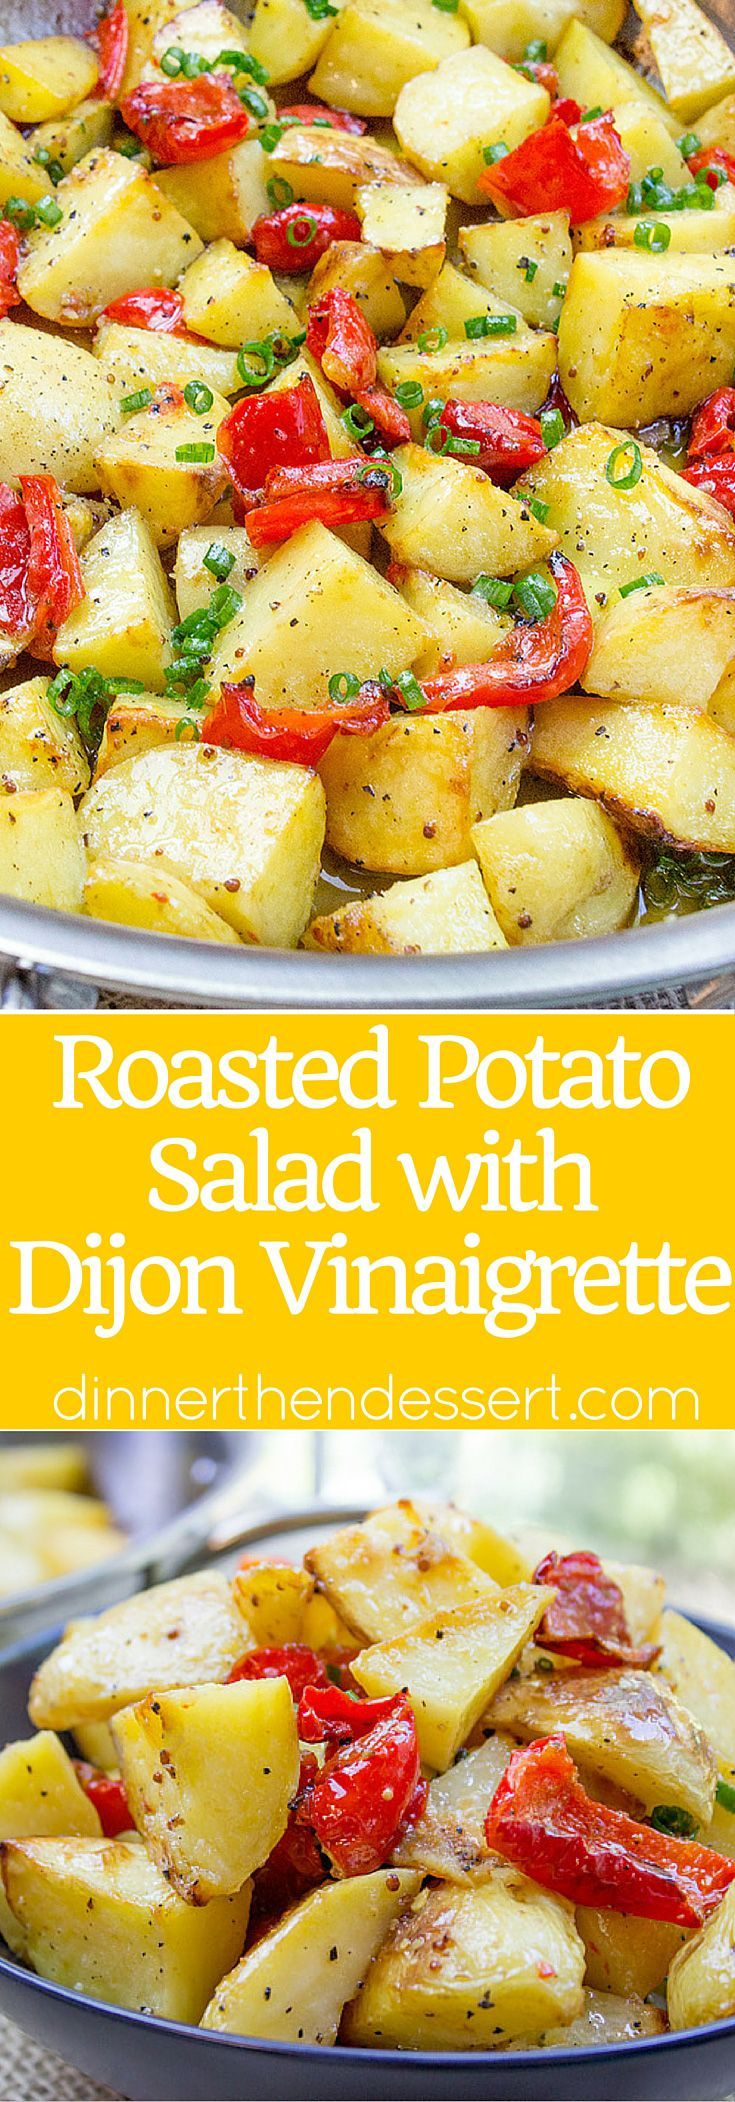 Roasted Potato Salad with Dijon Vinaigrette is the perfect summery side dish to you BBQ menu with just five ingredients!